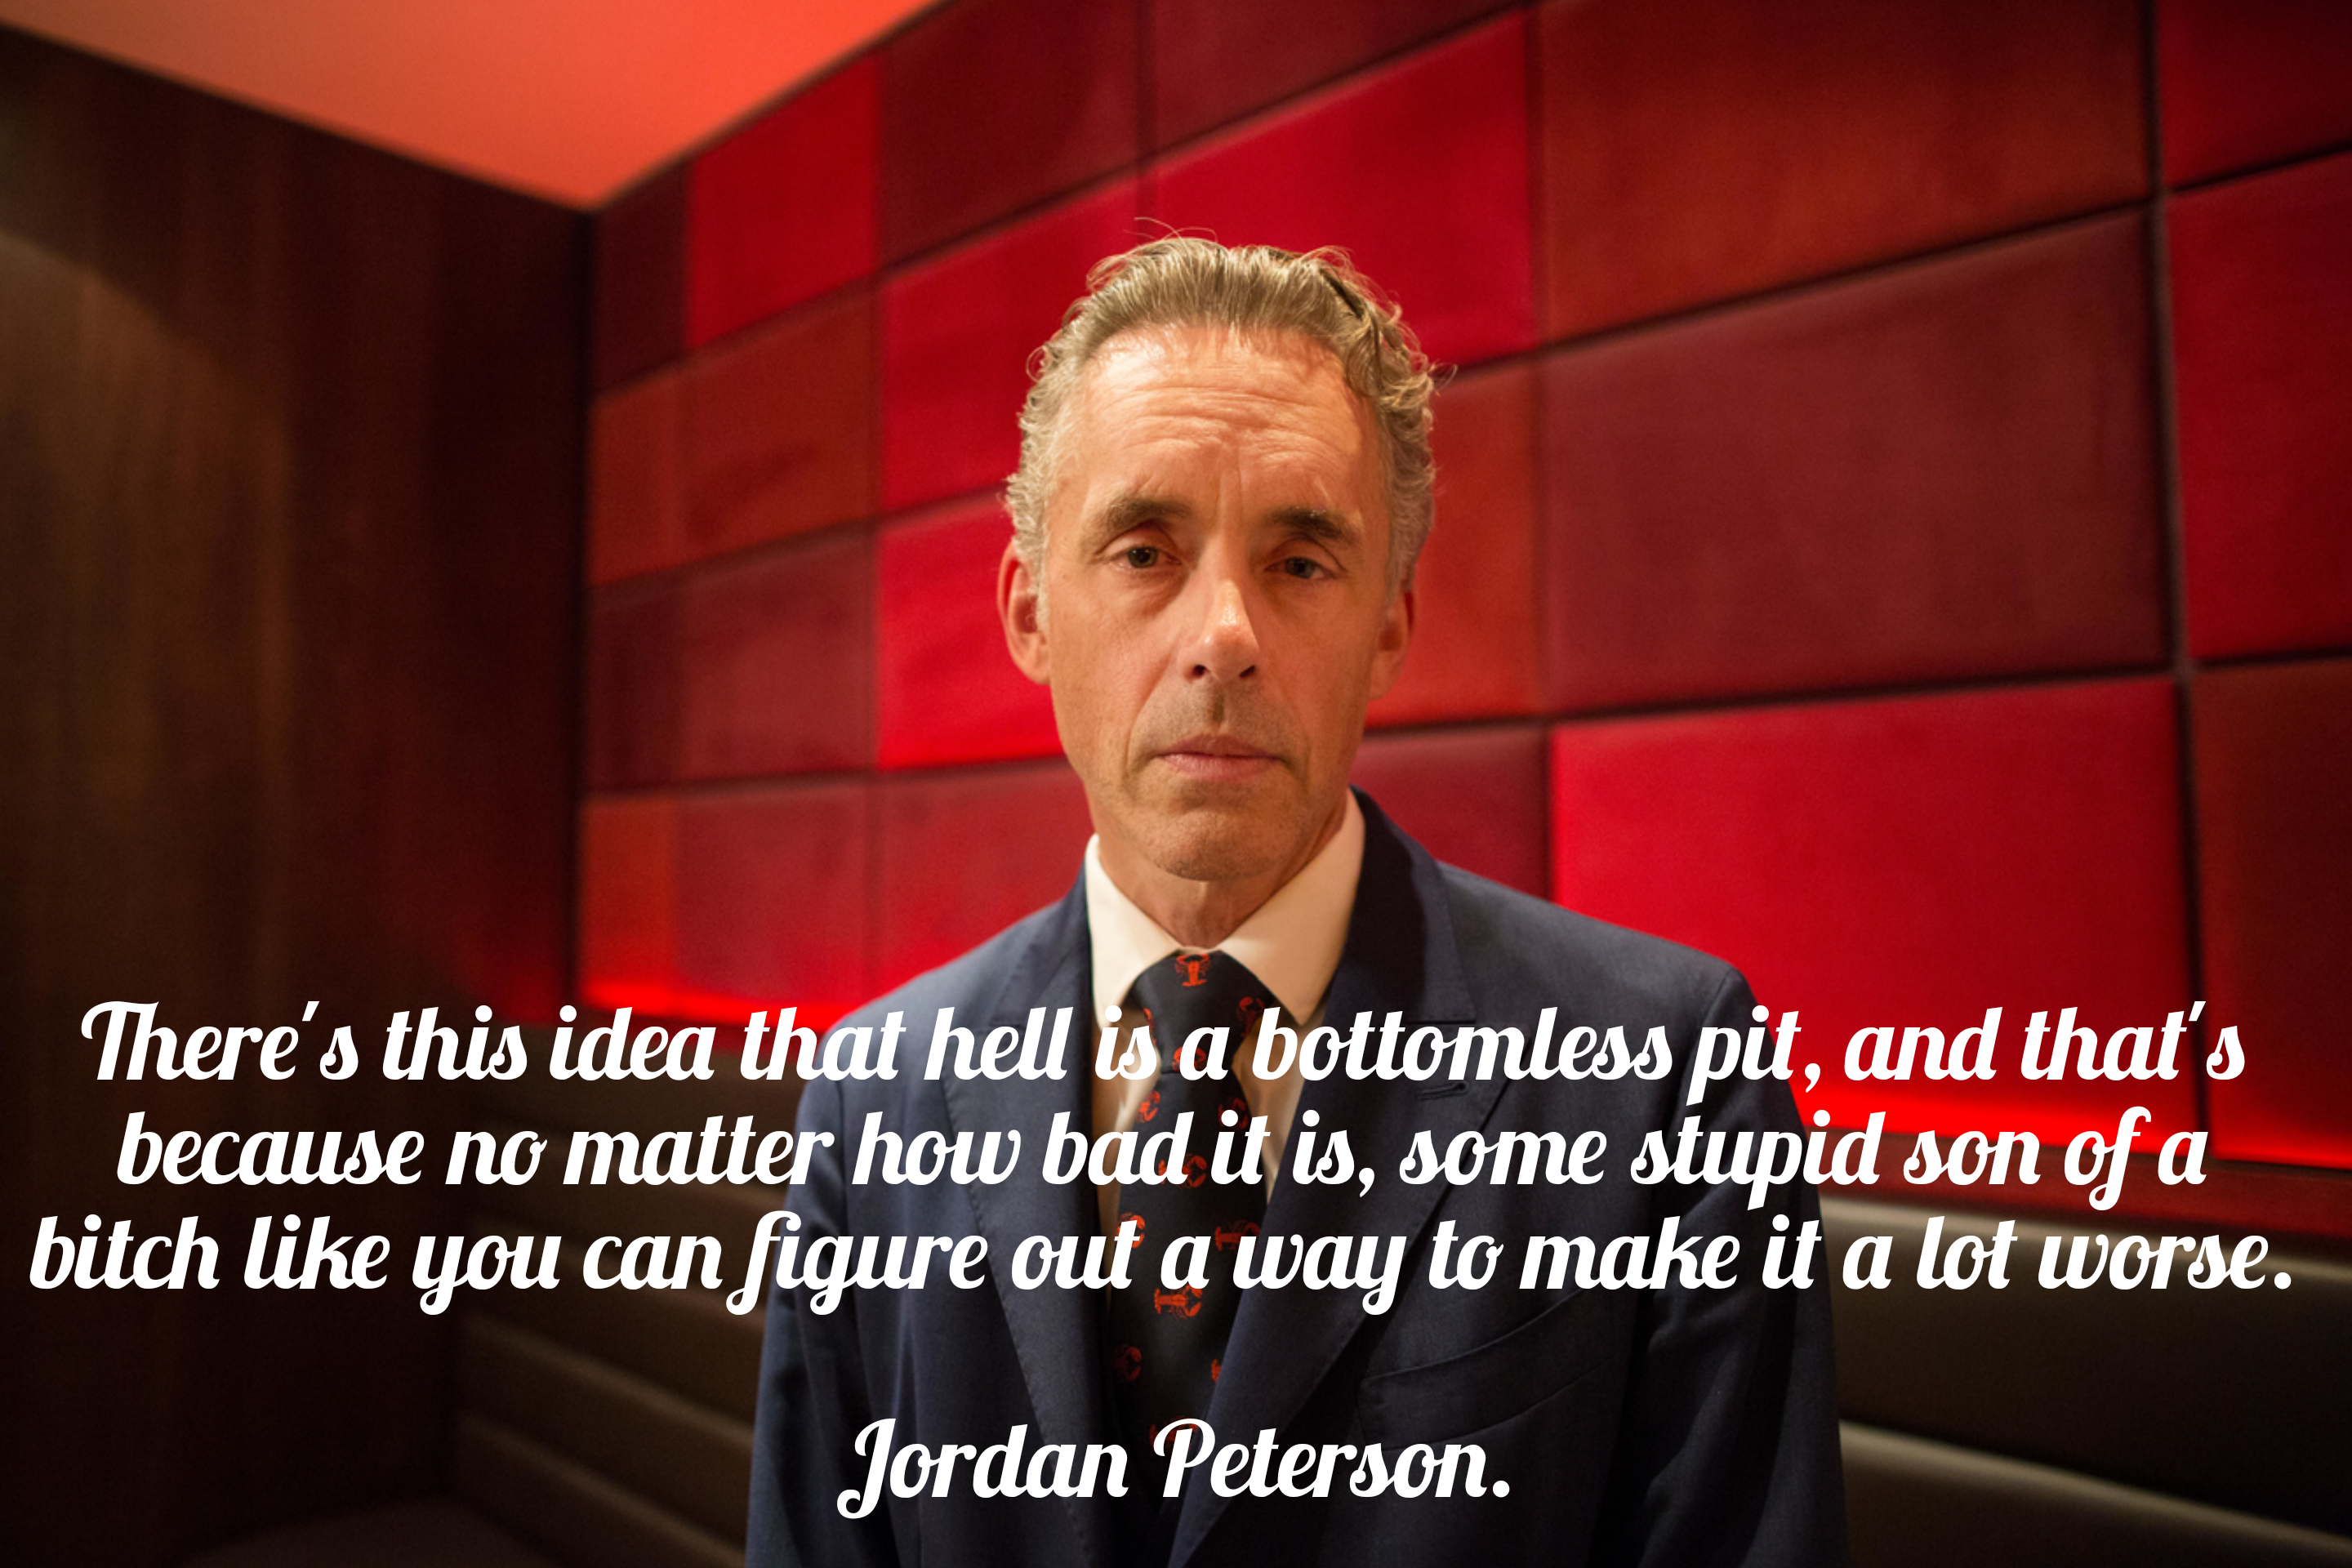 """There's this idea that hell is a bottomless pit, and that's because no matter how bad it is, some stupid son of a bitch like you can figure out a way to make it a lot worse."" – Jordan Peterson. [2880×1920]"